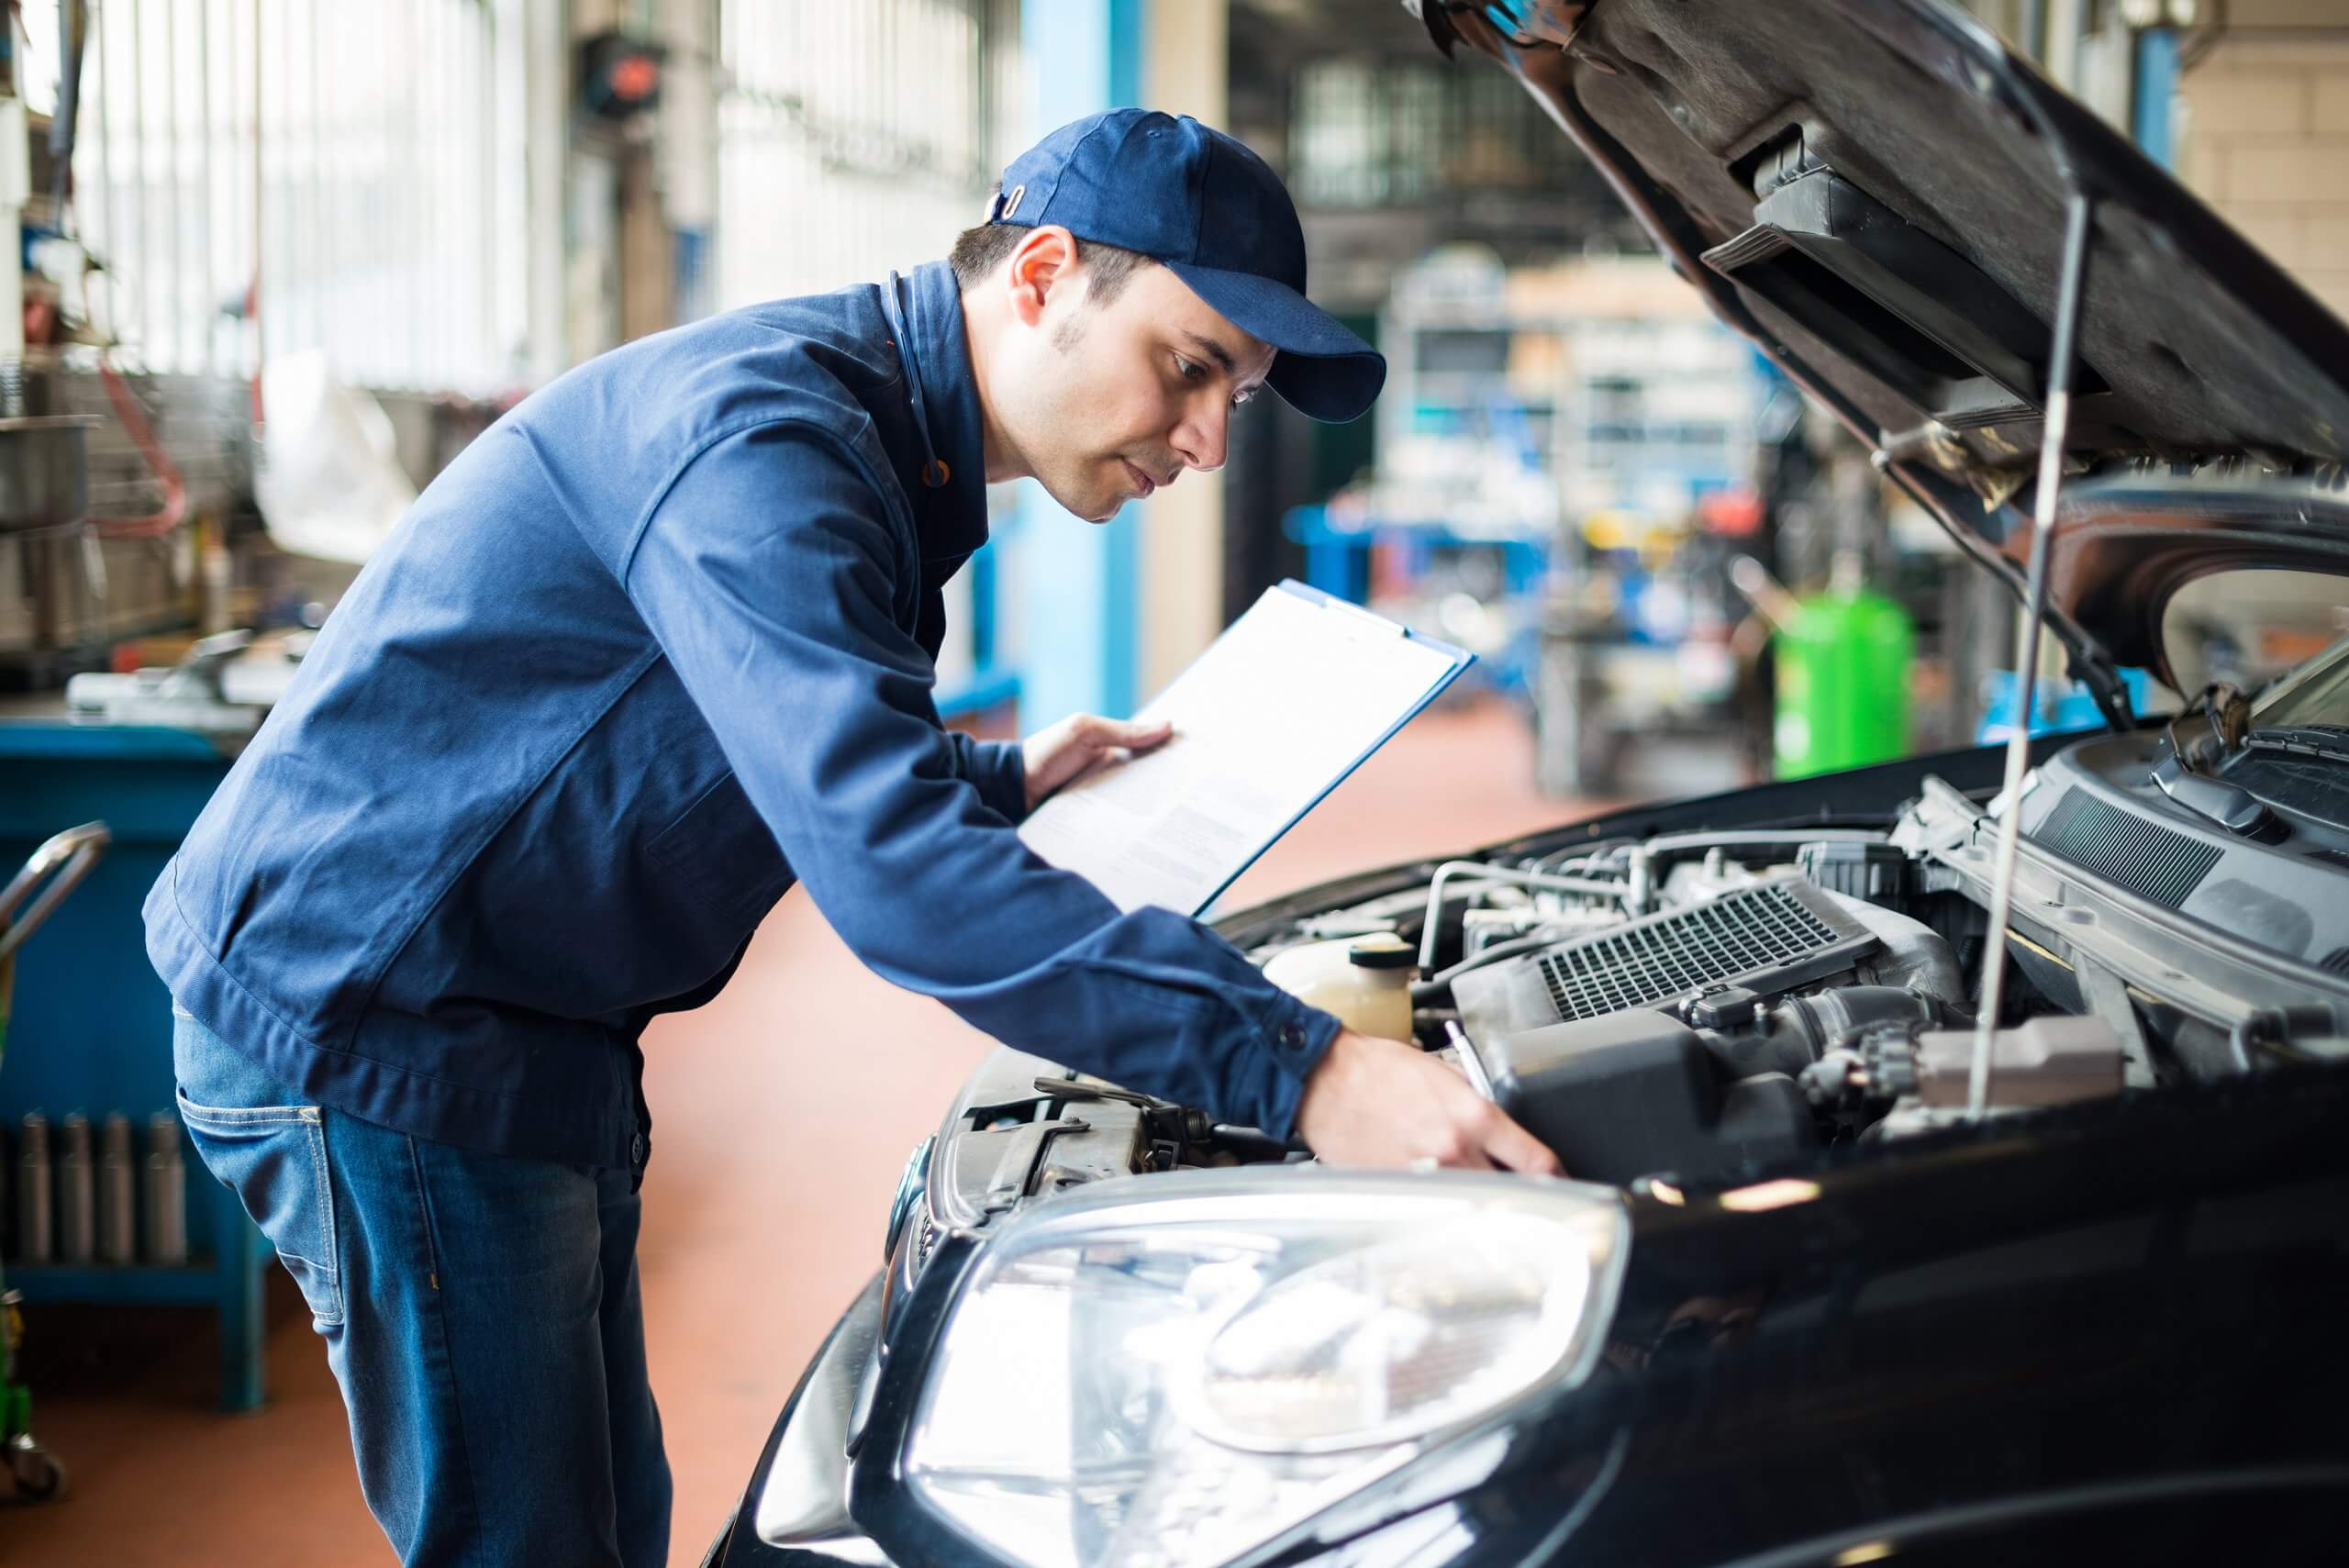 mechanic inspecting car engine with clipboard during an oil and filter change